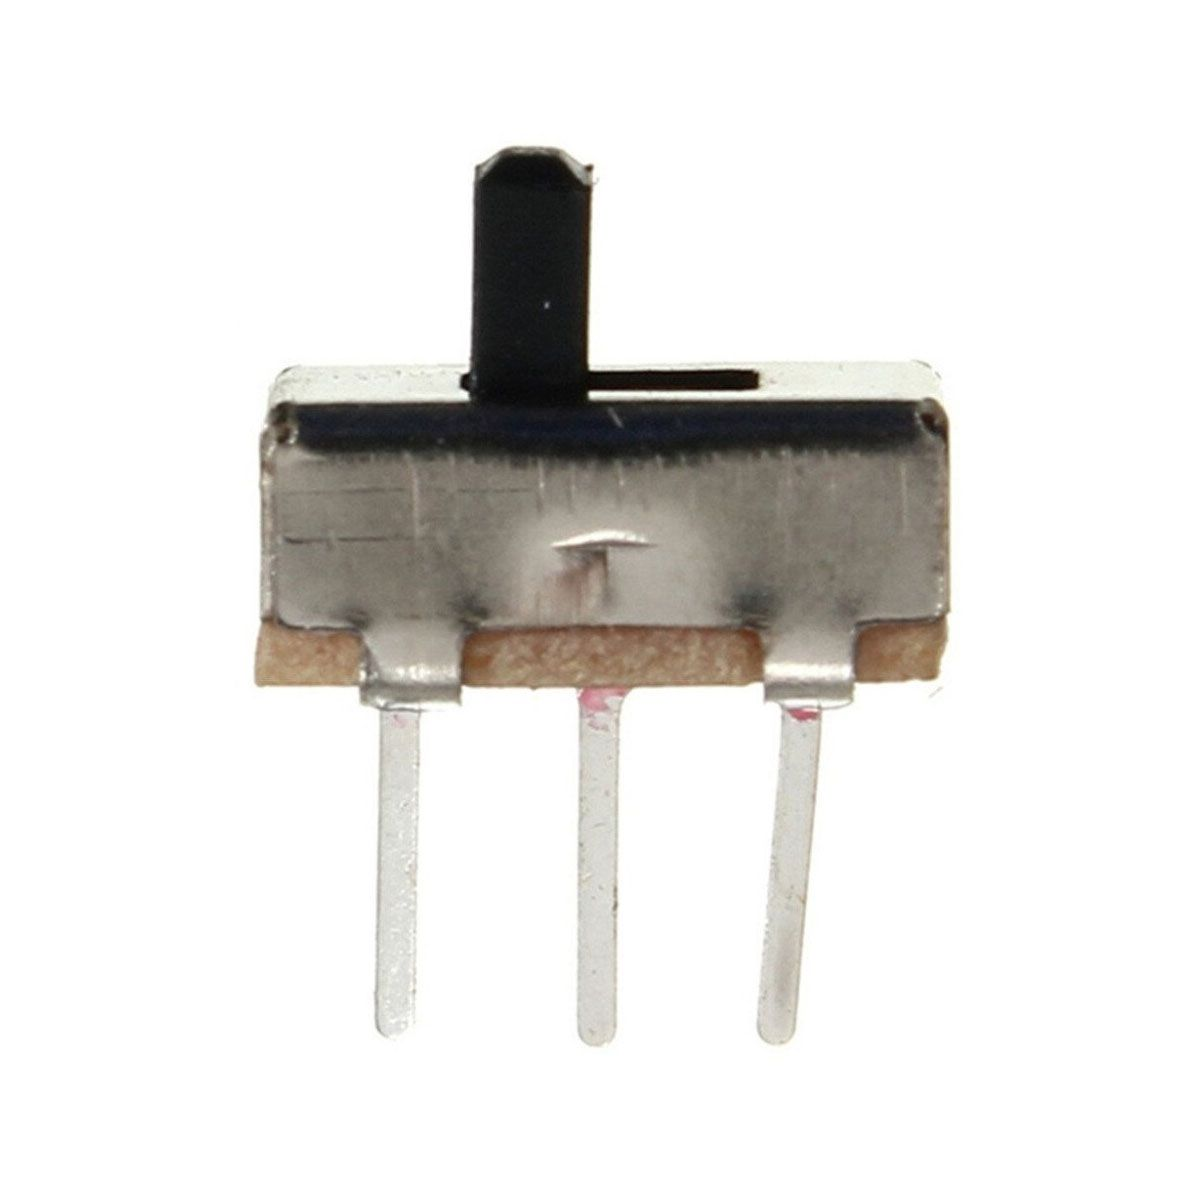 4x Micro Interruptor Chave SS12d00G4 4mm